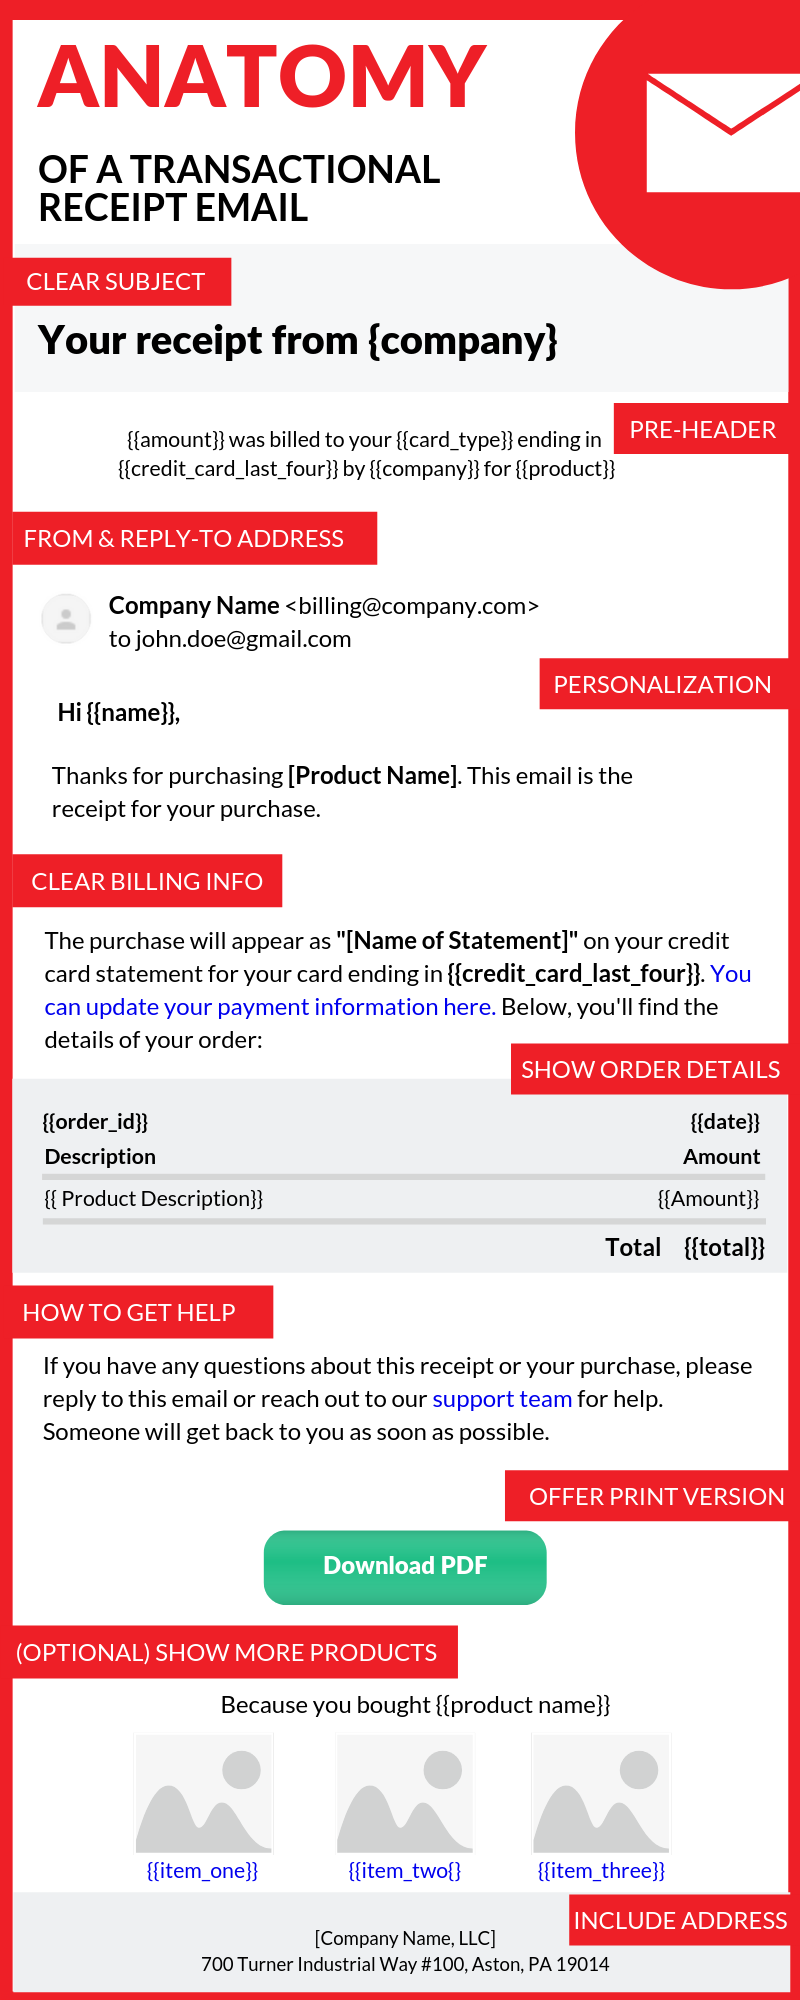 Effective Transactional Email Design